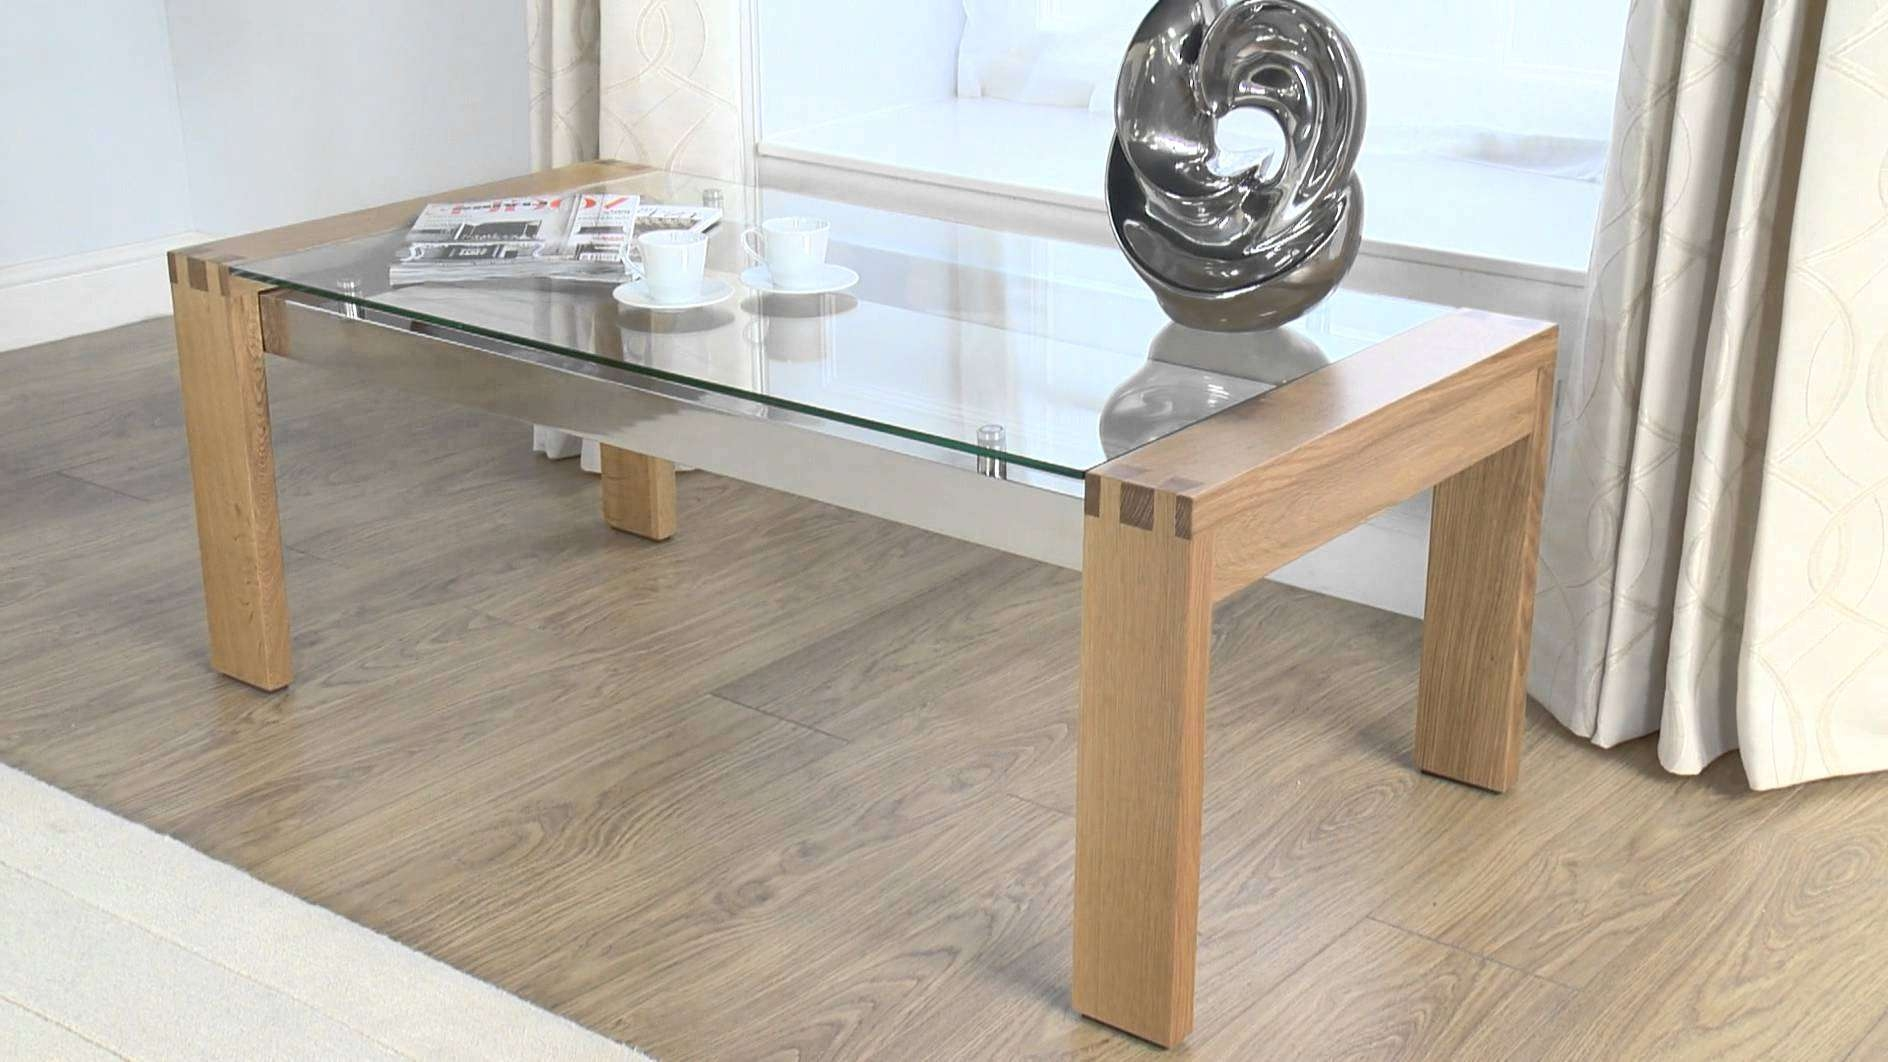 Newest Oak Coffee Table With Glass Top For Coffee Table : Fabulous Solid Oak Coffee Table Mission Style (View 4 of 20)